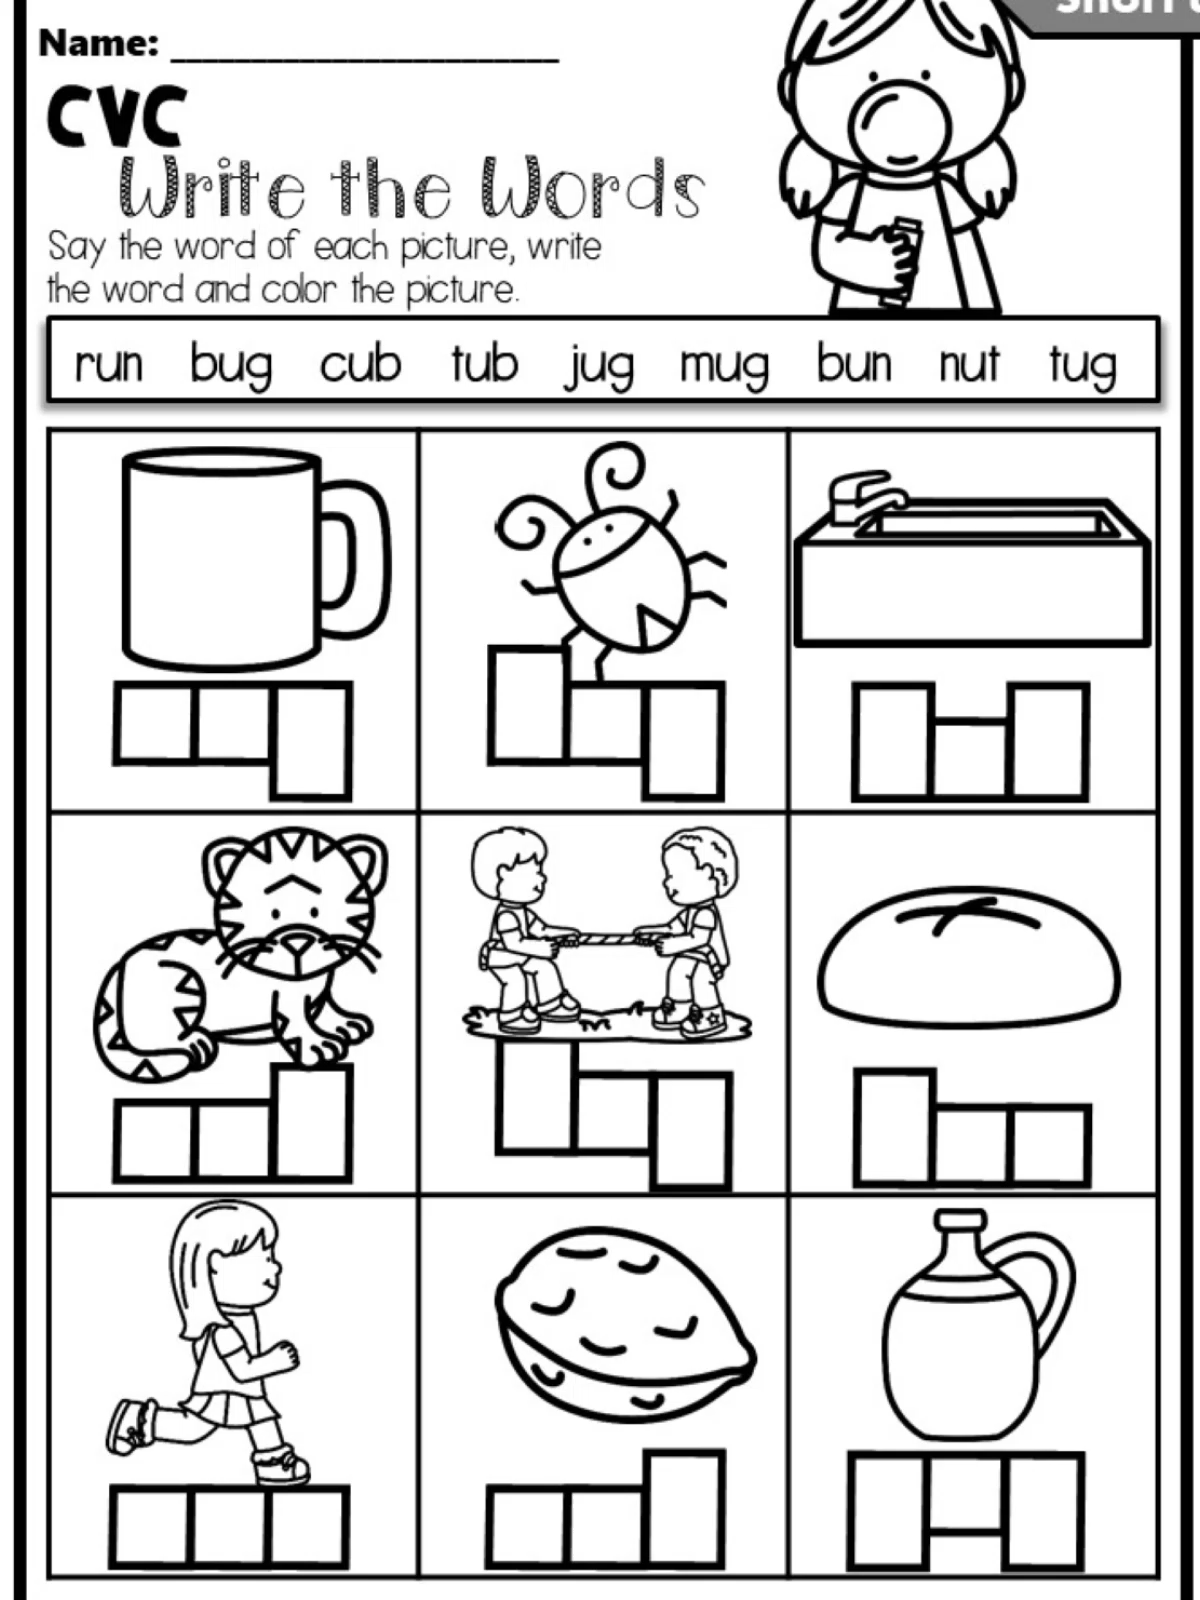 Phonics Worksheets CVC Write the Words for Kindergarten and First Grade